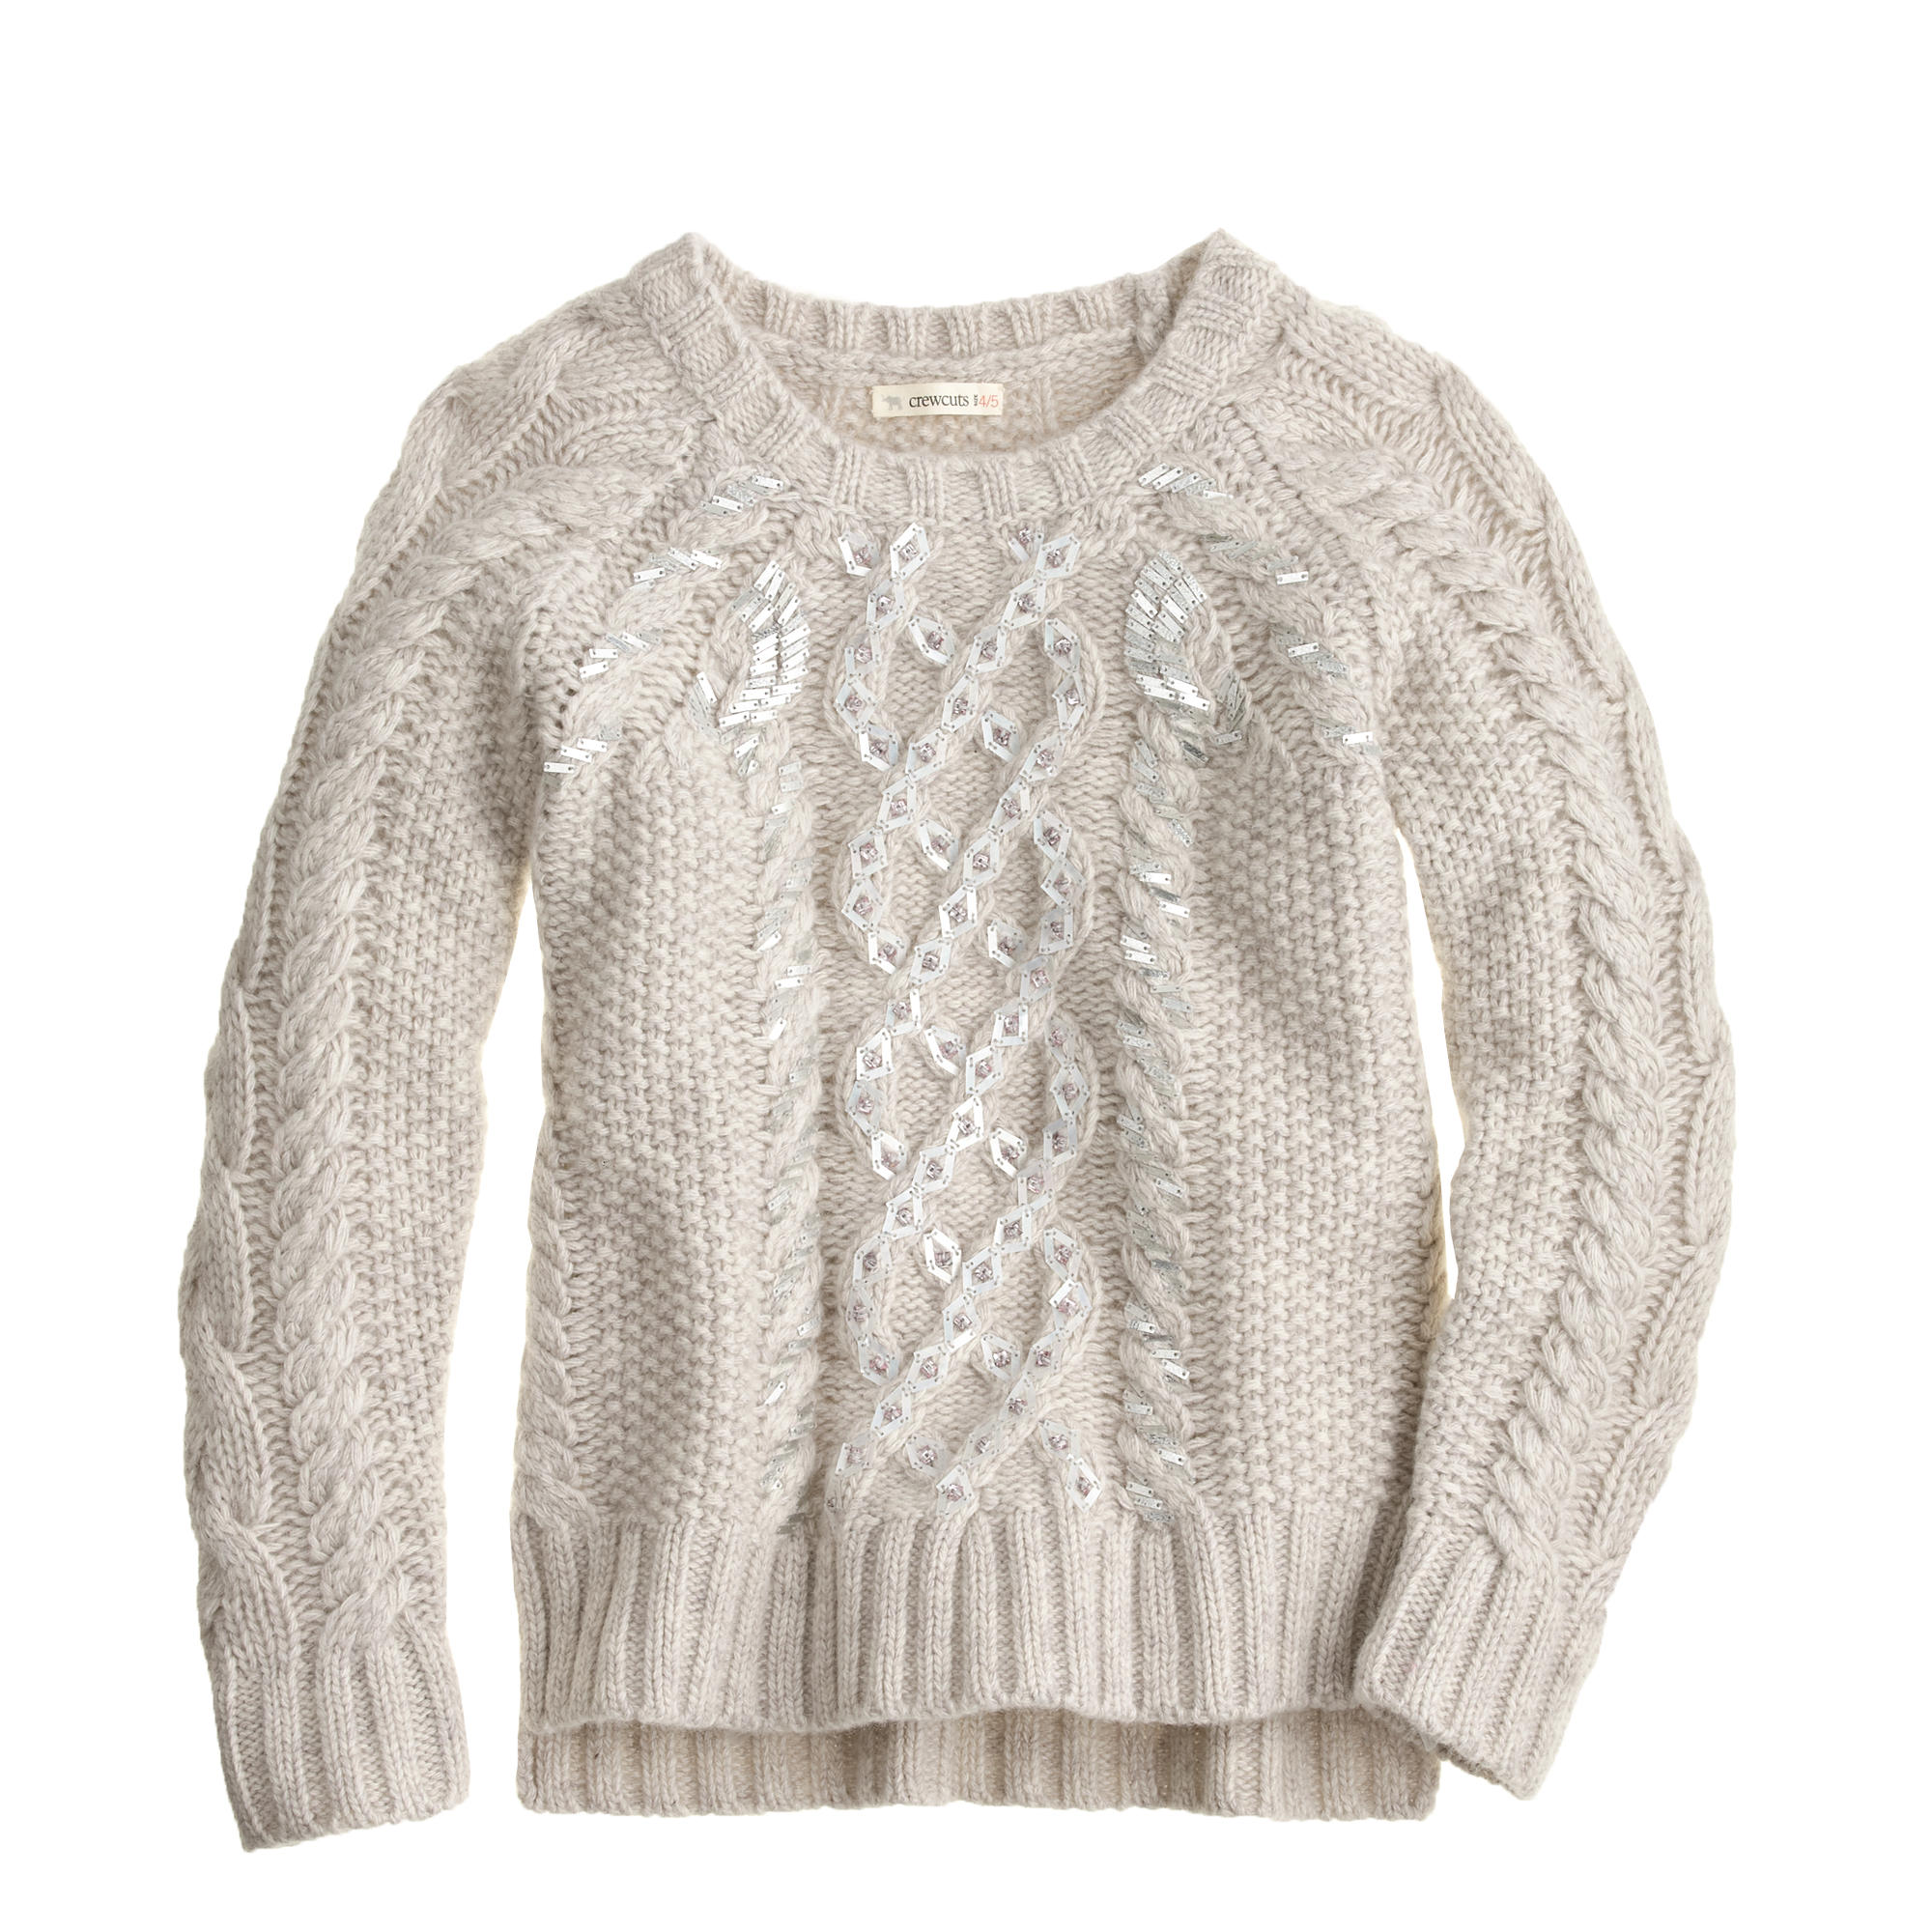 Knitting Sweaters For Girls : Girls sequin cable knit sweater j crew